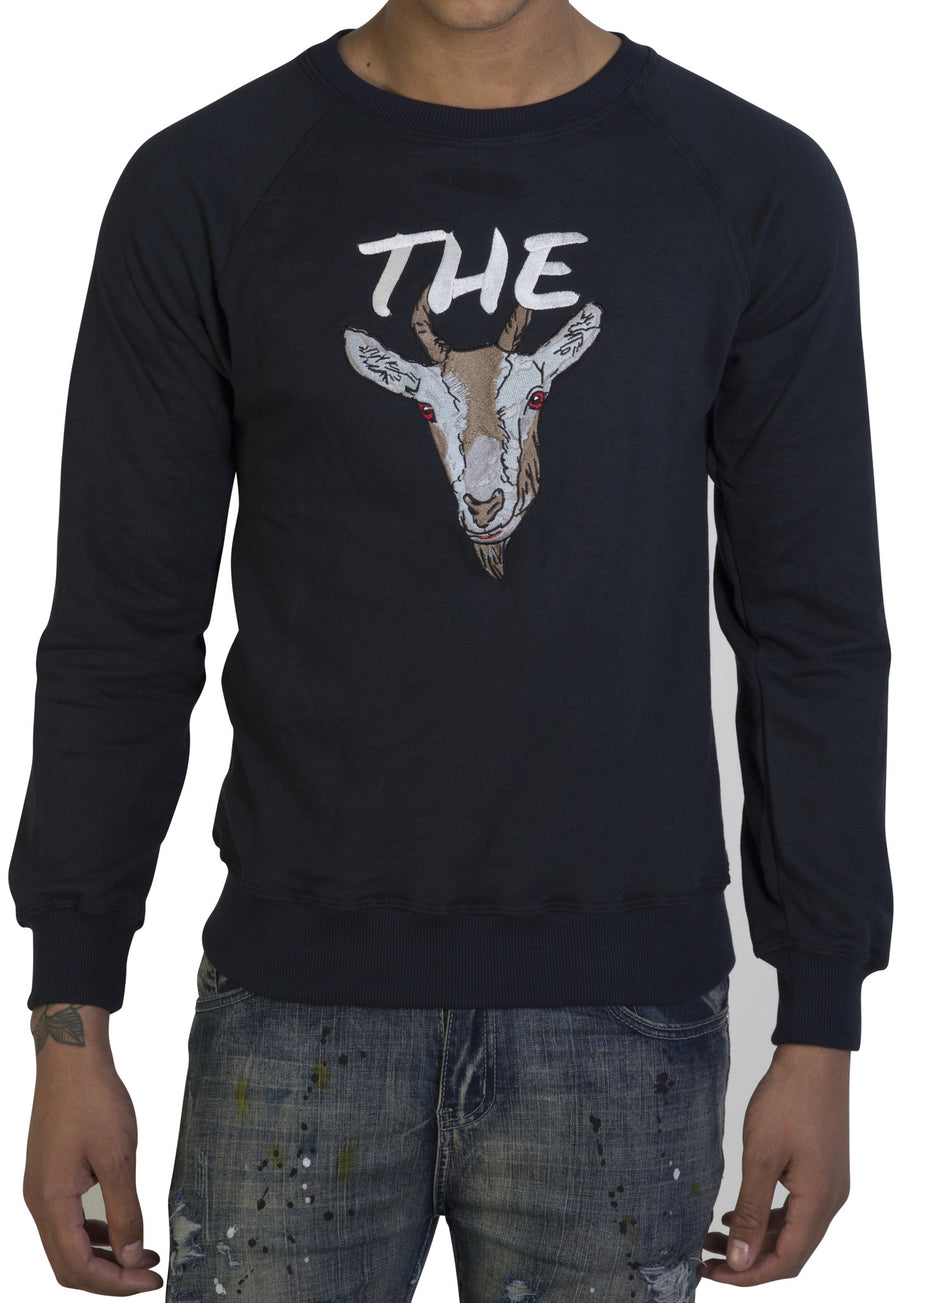 Navy Blue 'The GOAT' sweatshirt - Greatest Of all Time